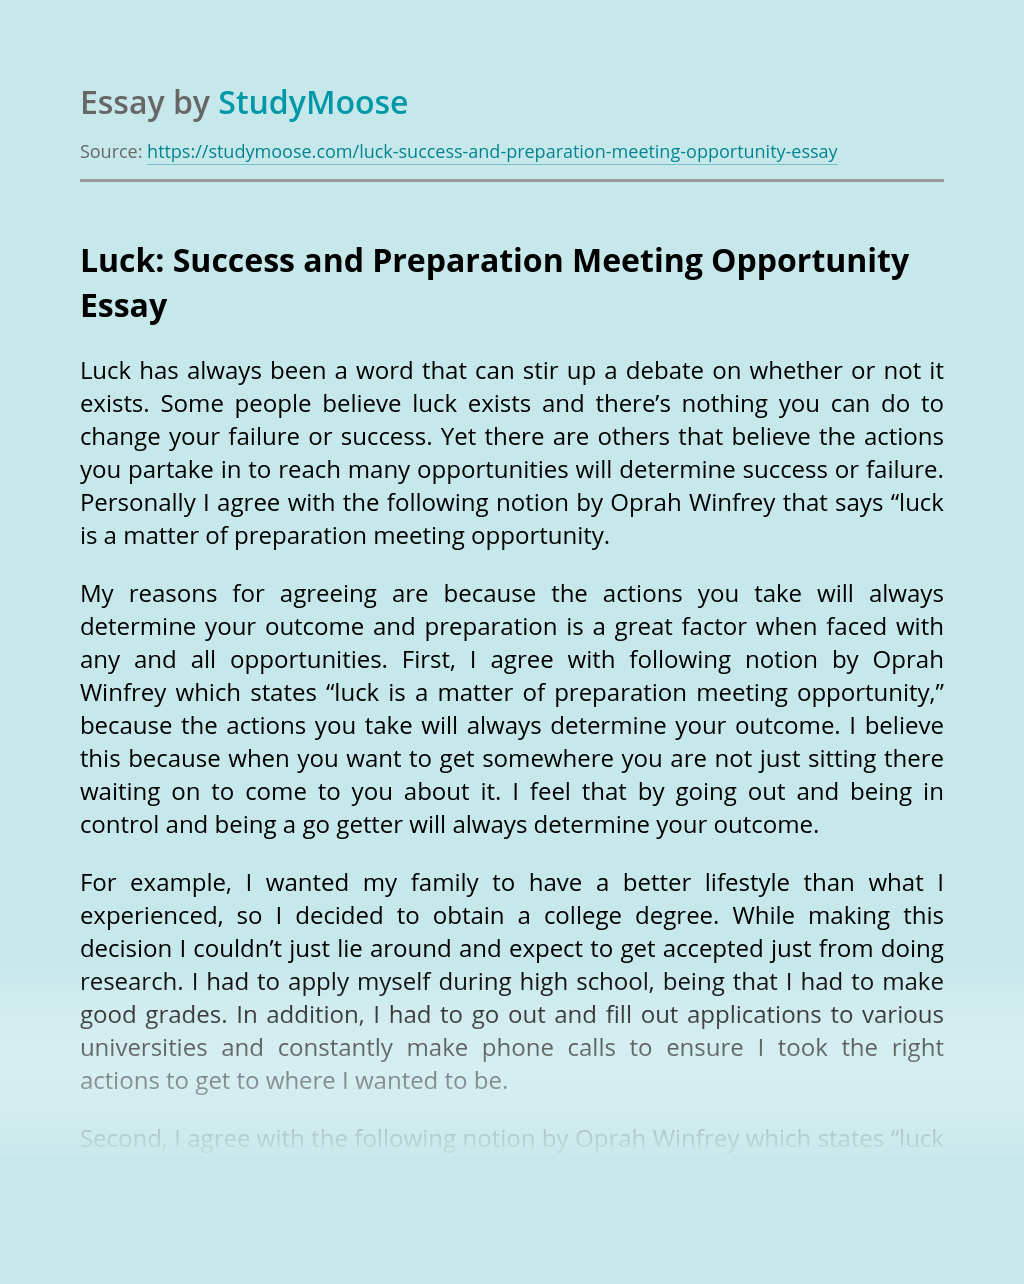 Luck: Success and Preparation Meeting Opportunity